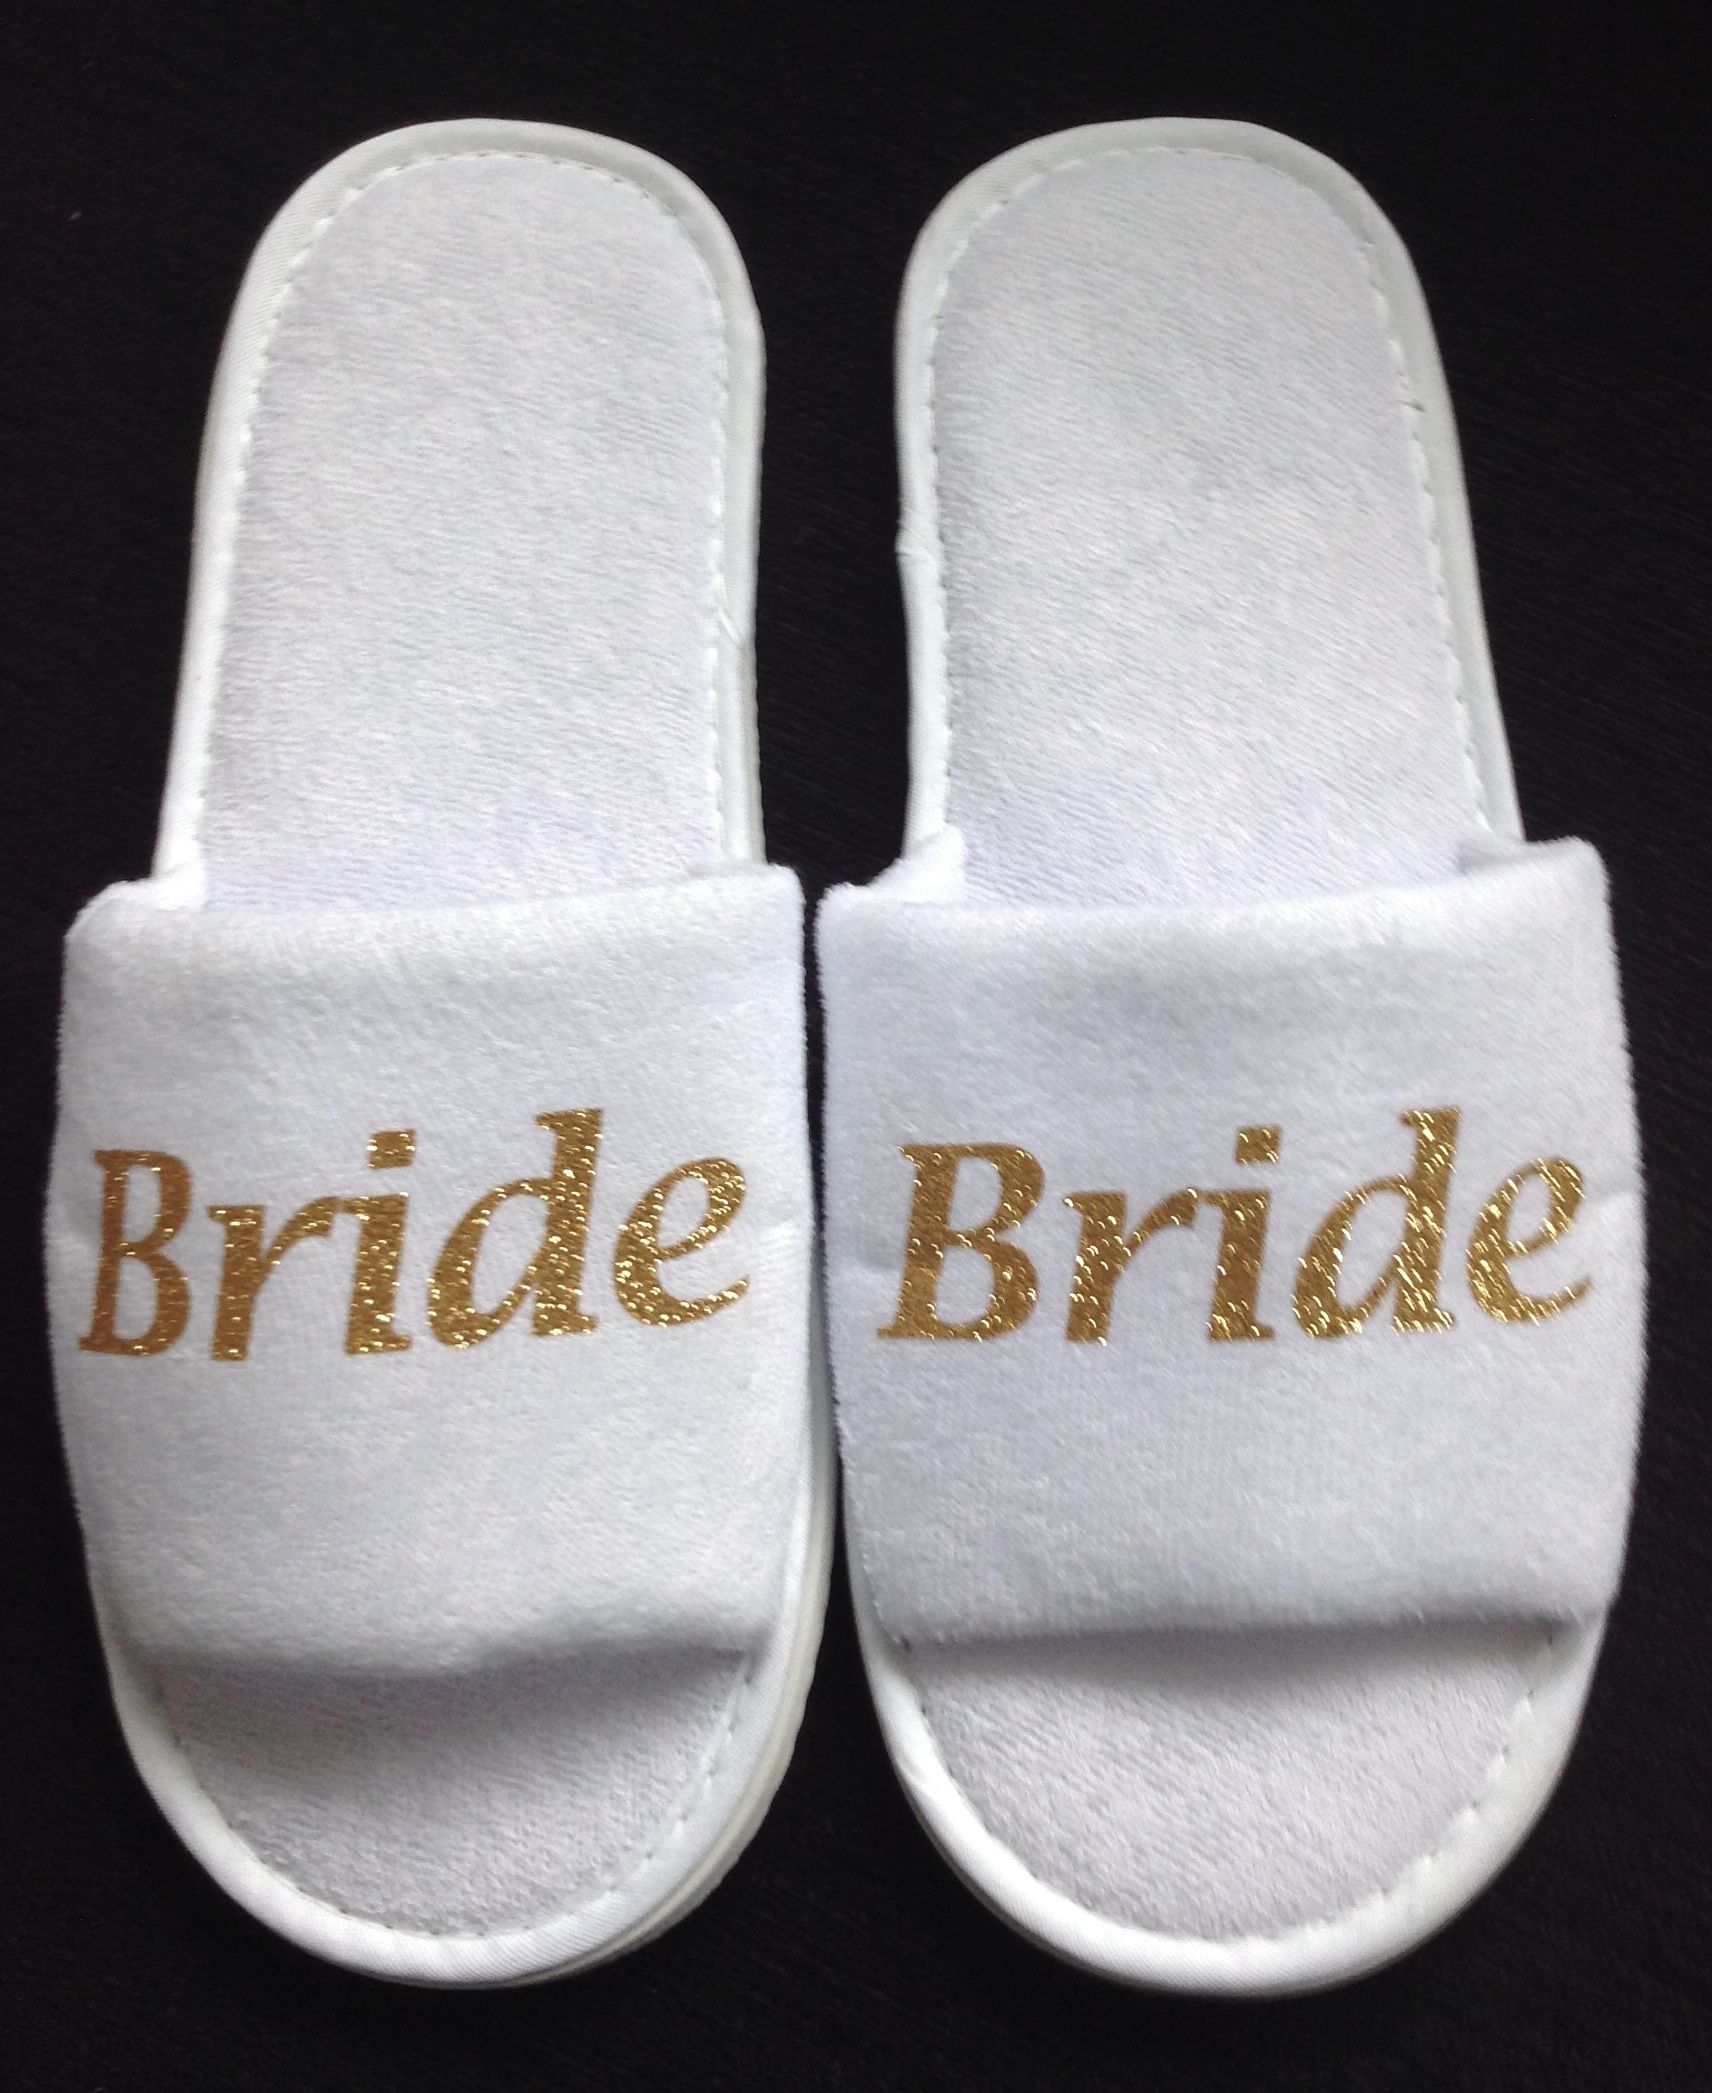 pictures How to Personalize Slippers